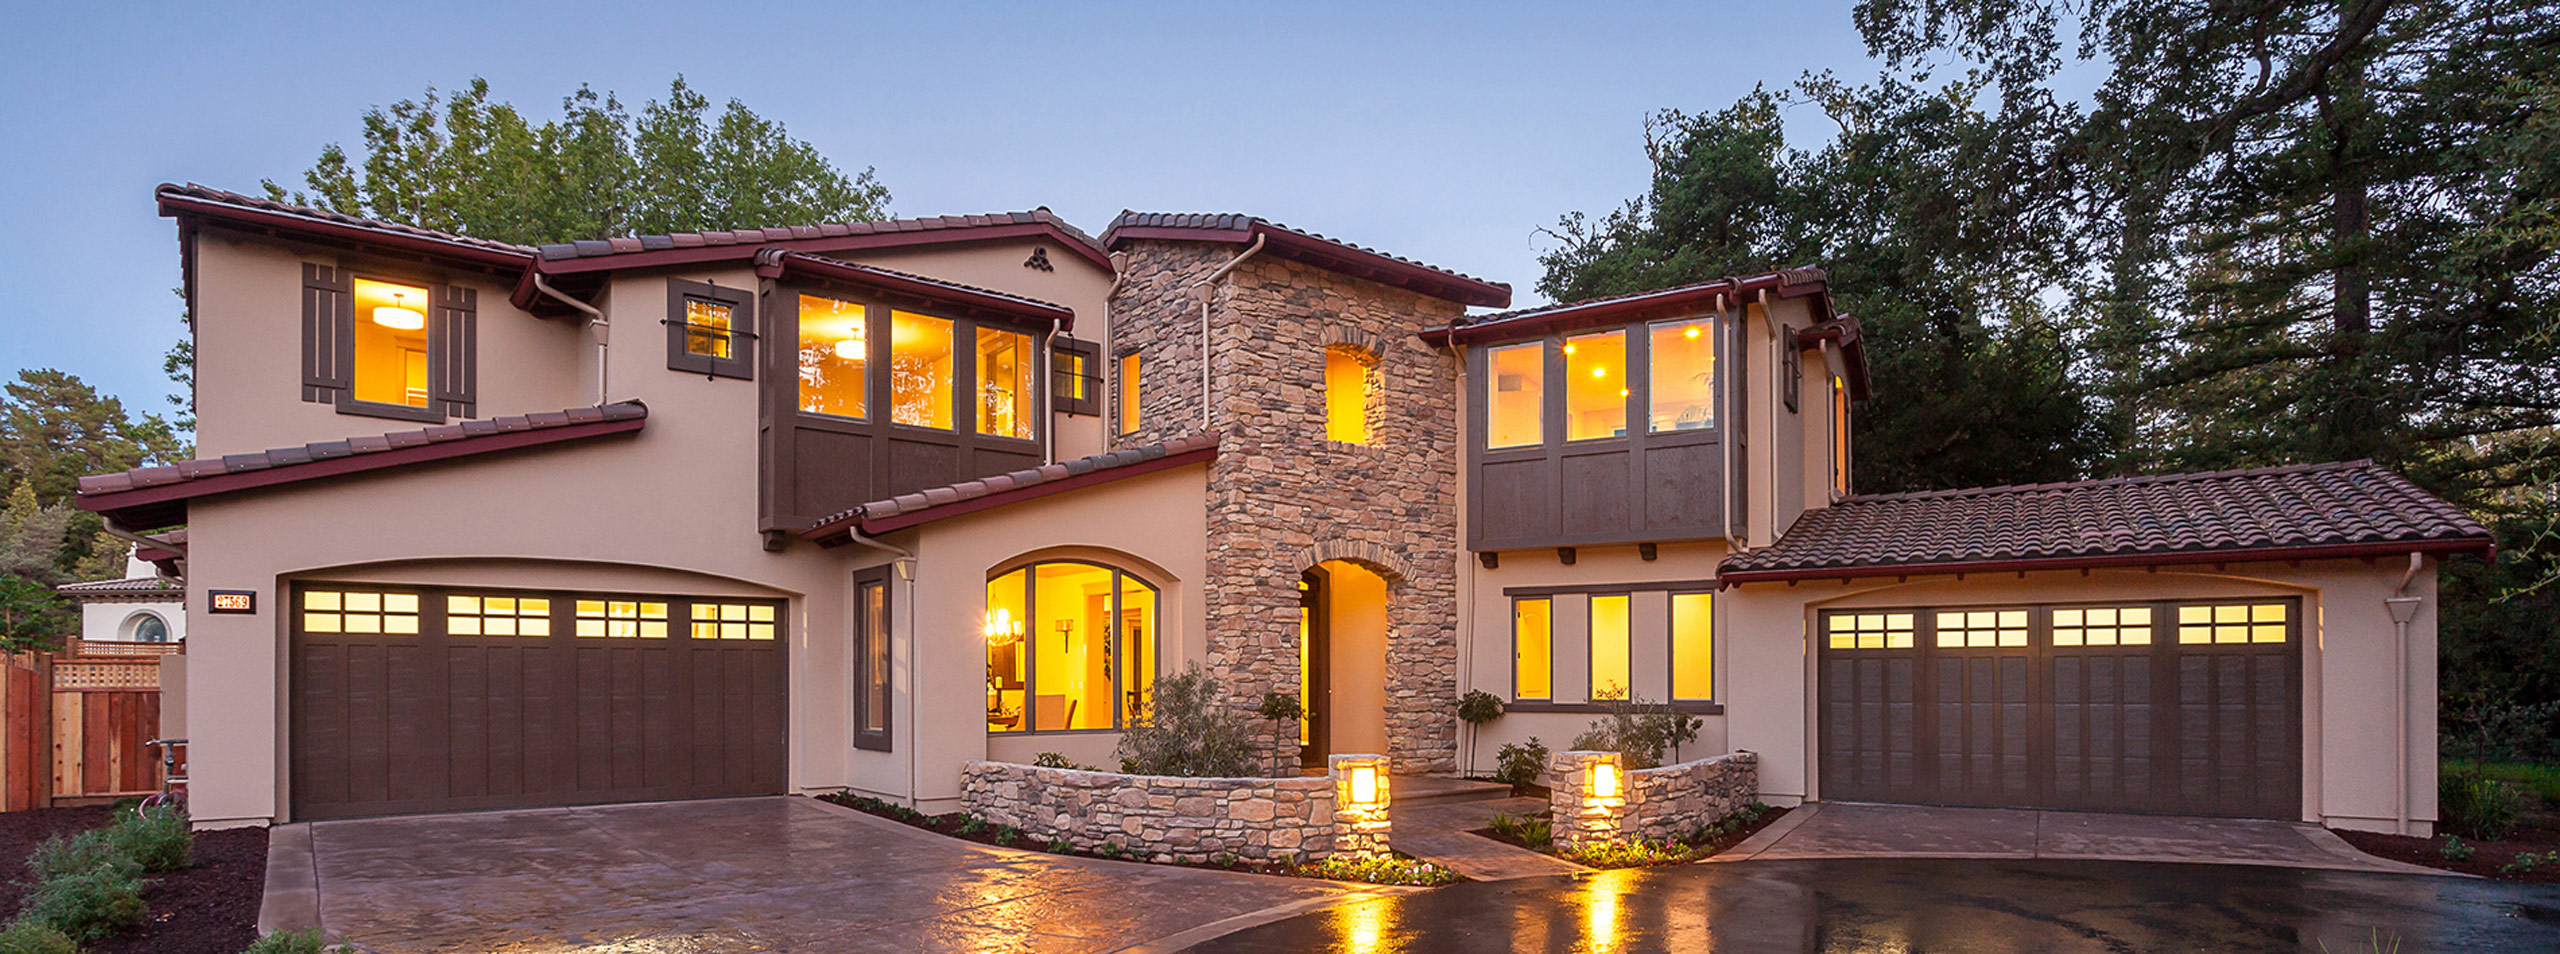 Community-Residential-Detached_2560x954-opt